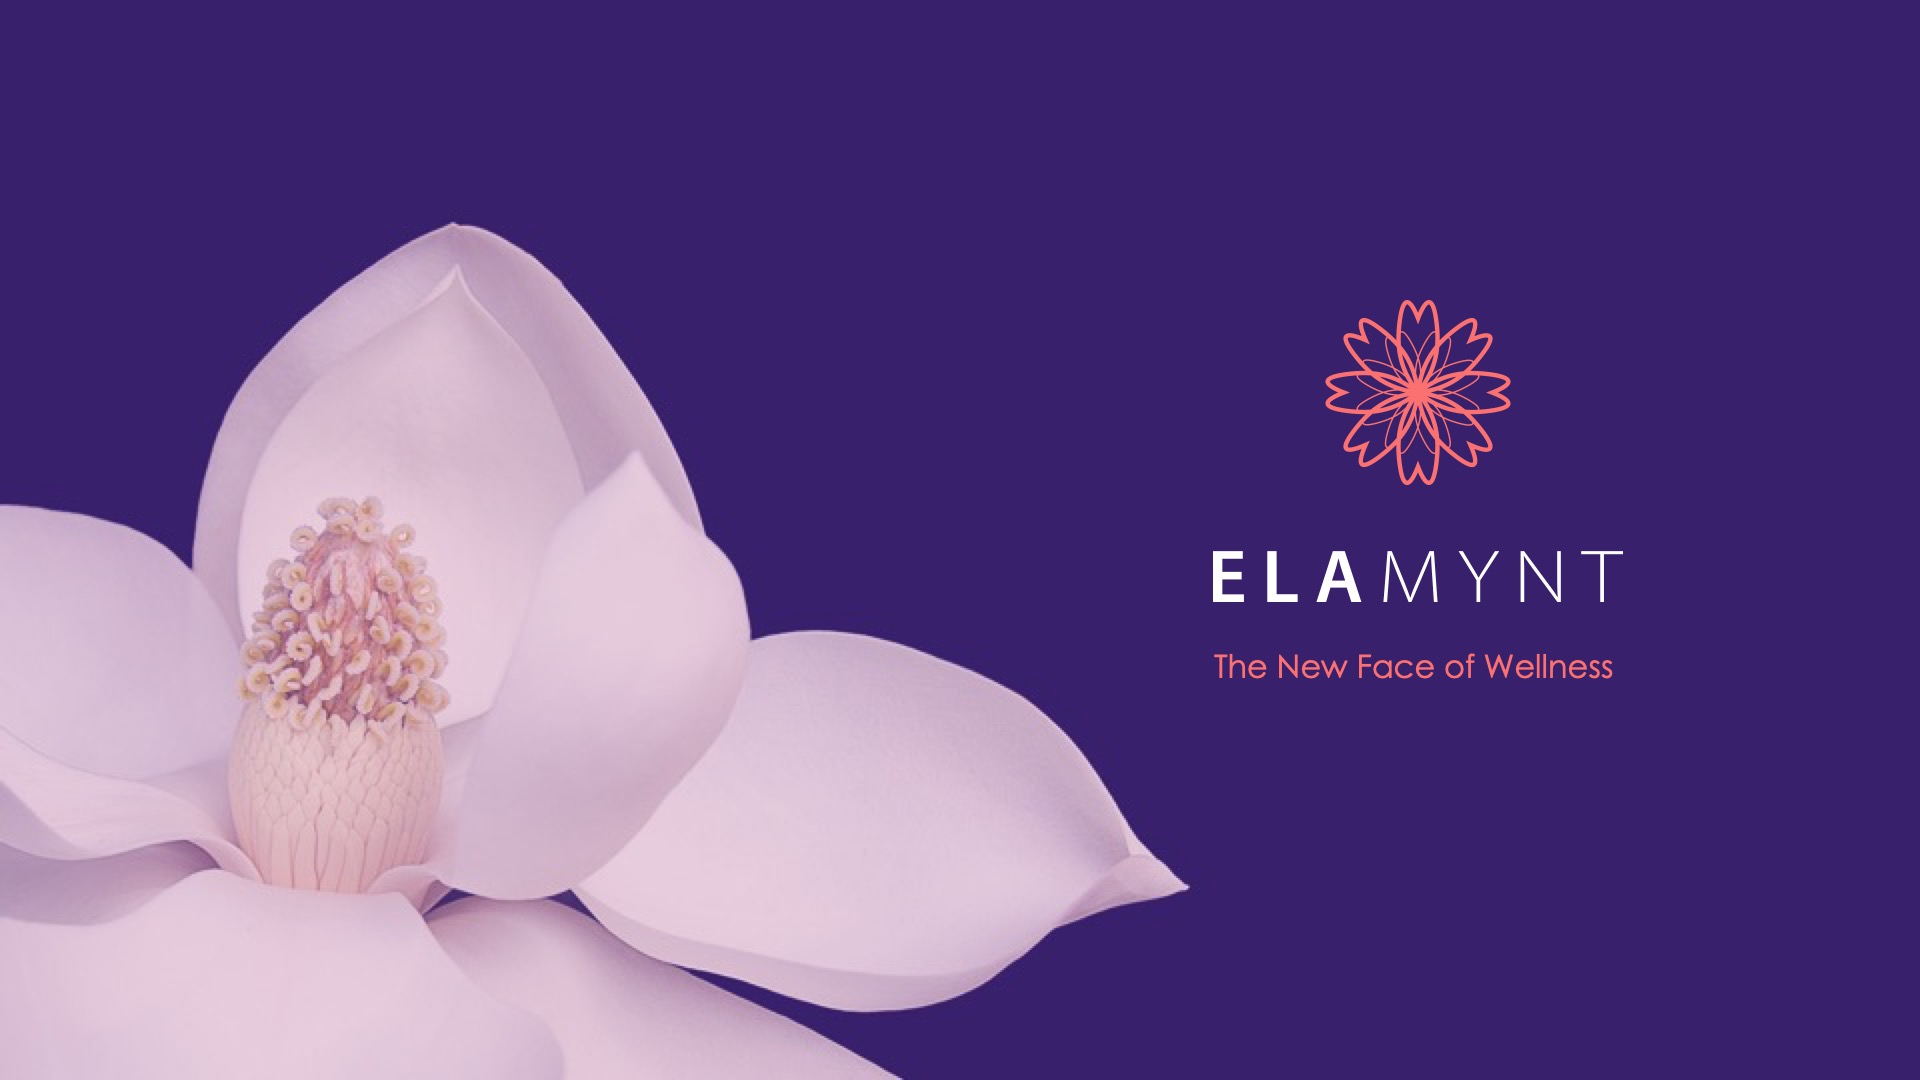 Slide Design Sample: Cover with company logo on right and lotus flower on left